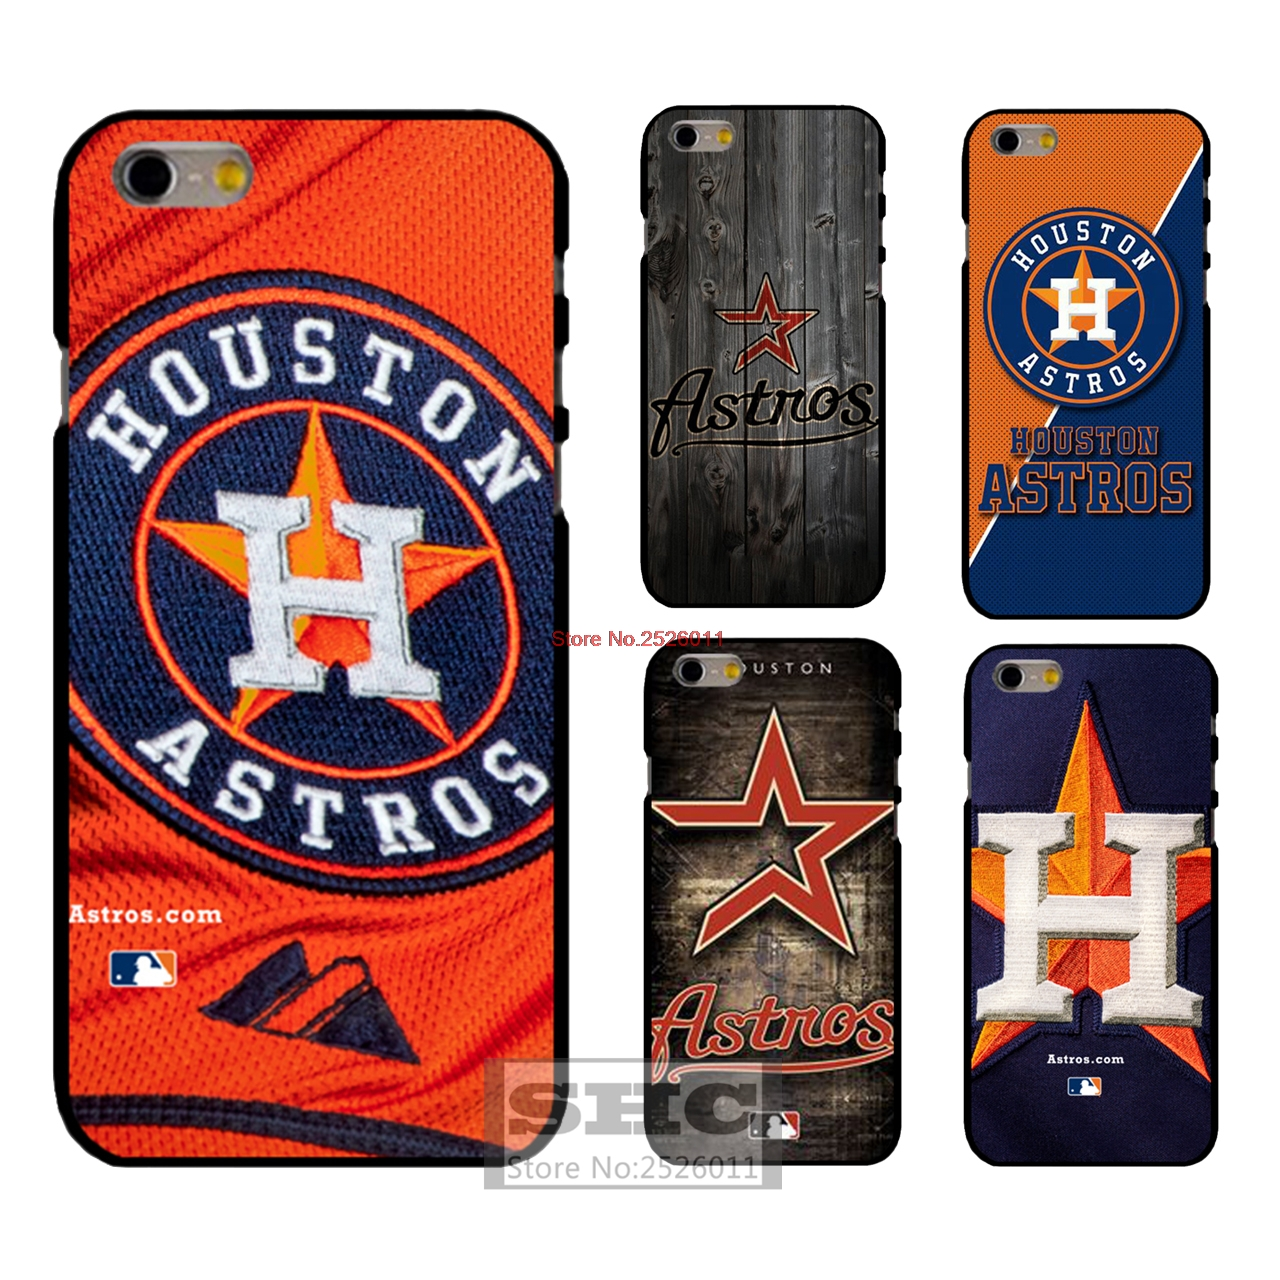 Houston Astros MLB Hard plastic Cover Case for iphone 4s 5s SE 5c 6 6s plus 7 samsung S3/4/5/6/7 mini Note3 4 A3 A5 Touch 5(China (Mainland))